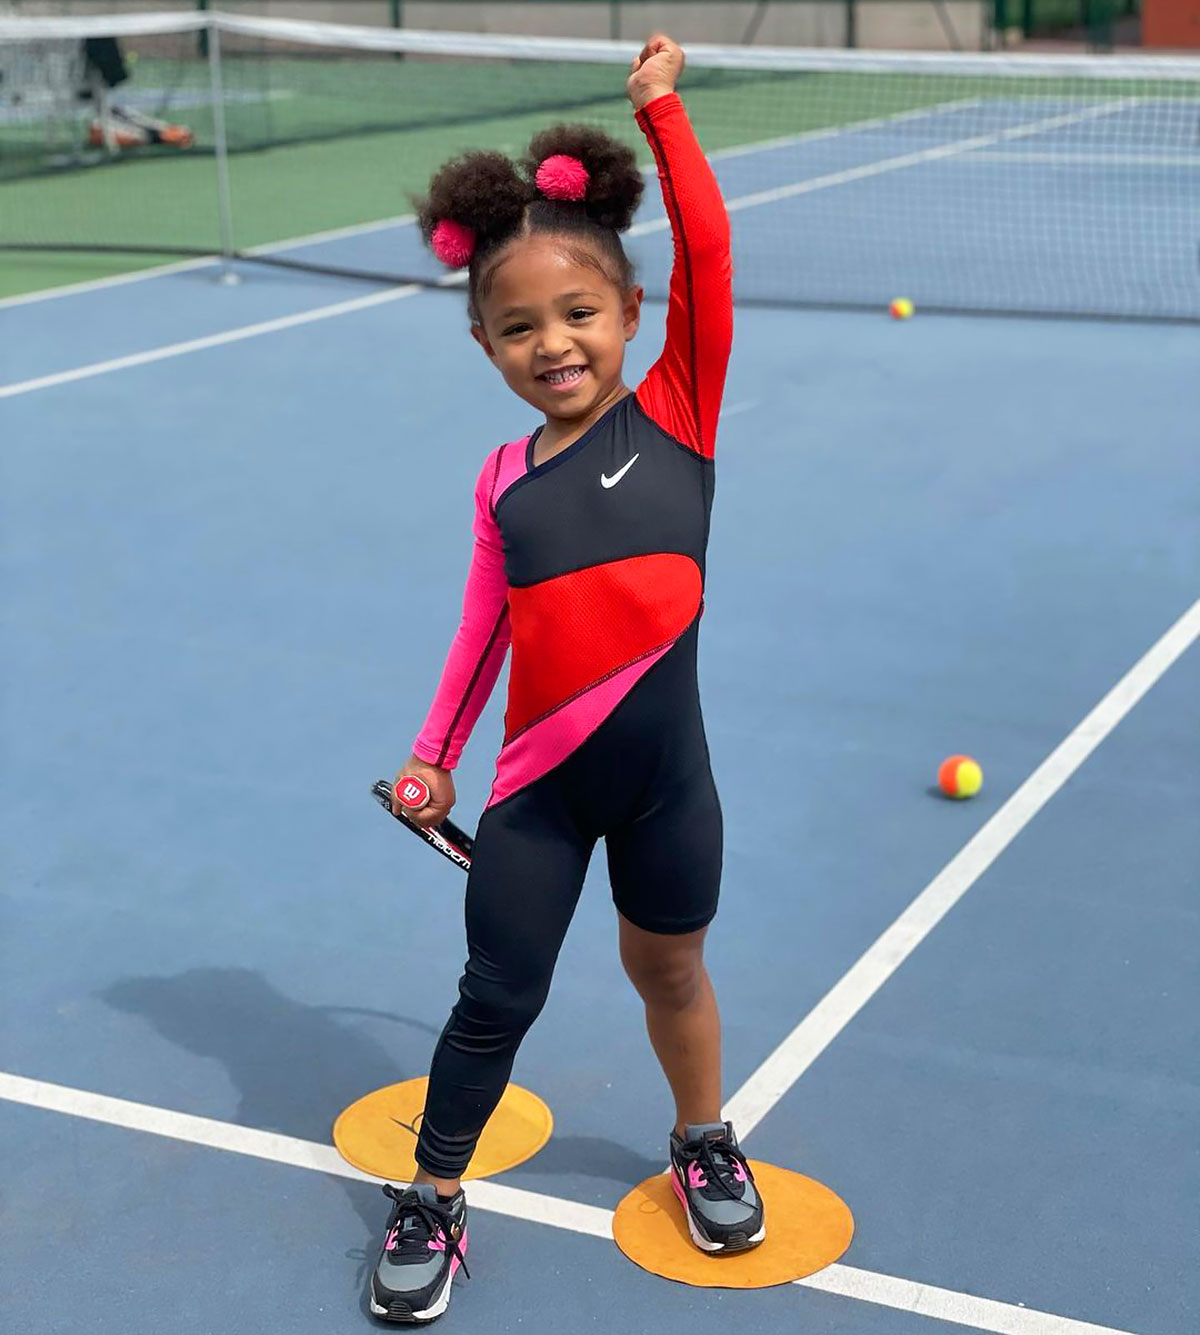 Olympia Ohanian Rocks a Mini Version of Serena Williams' Tennis Outfit